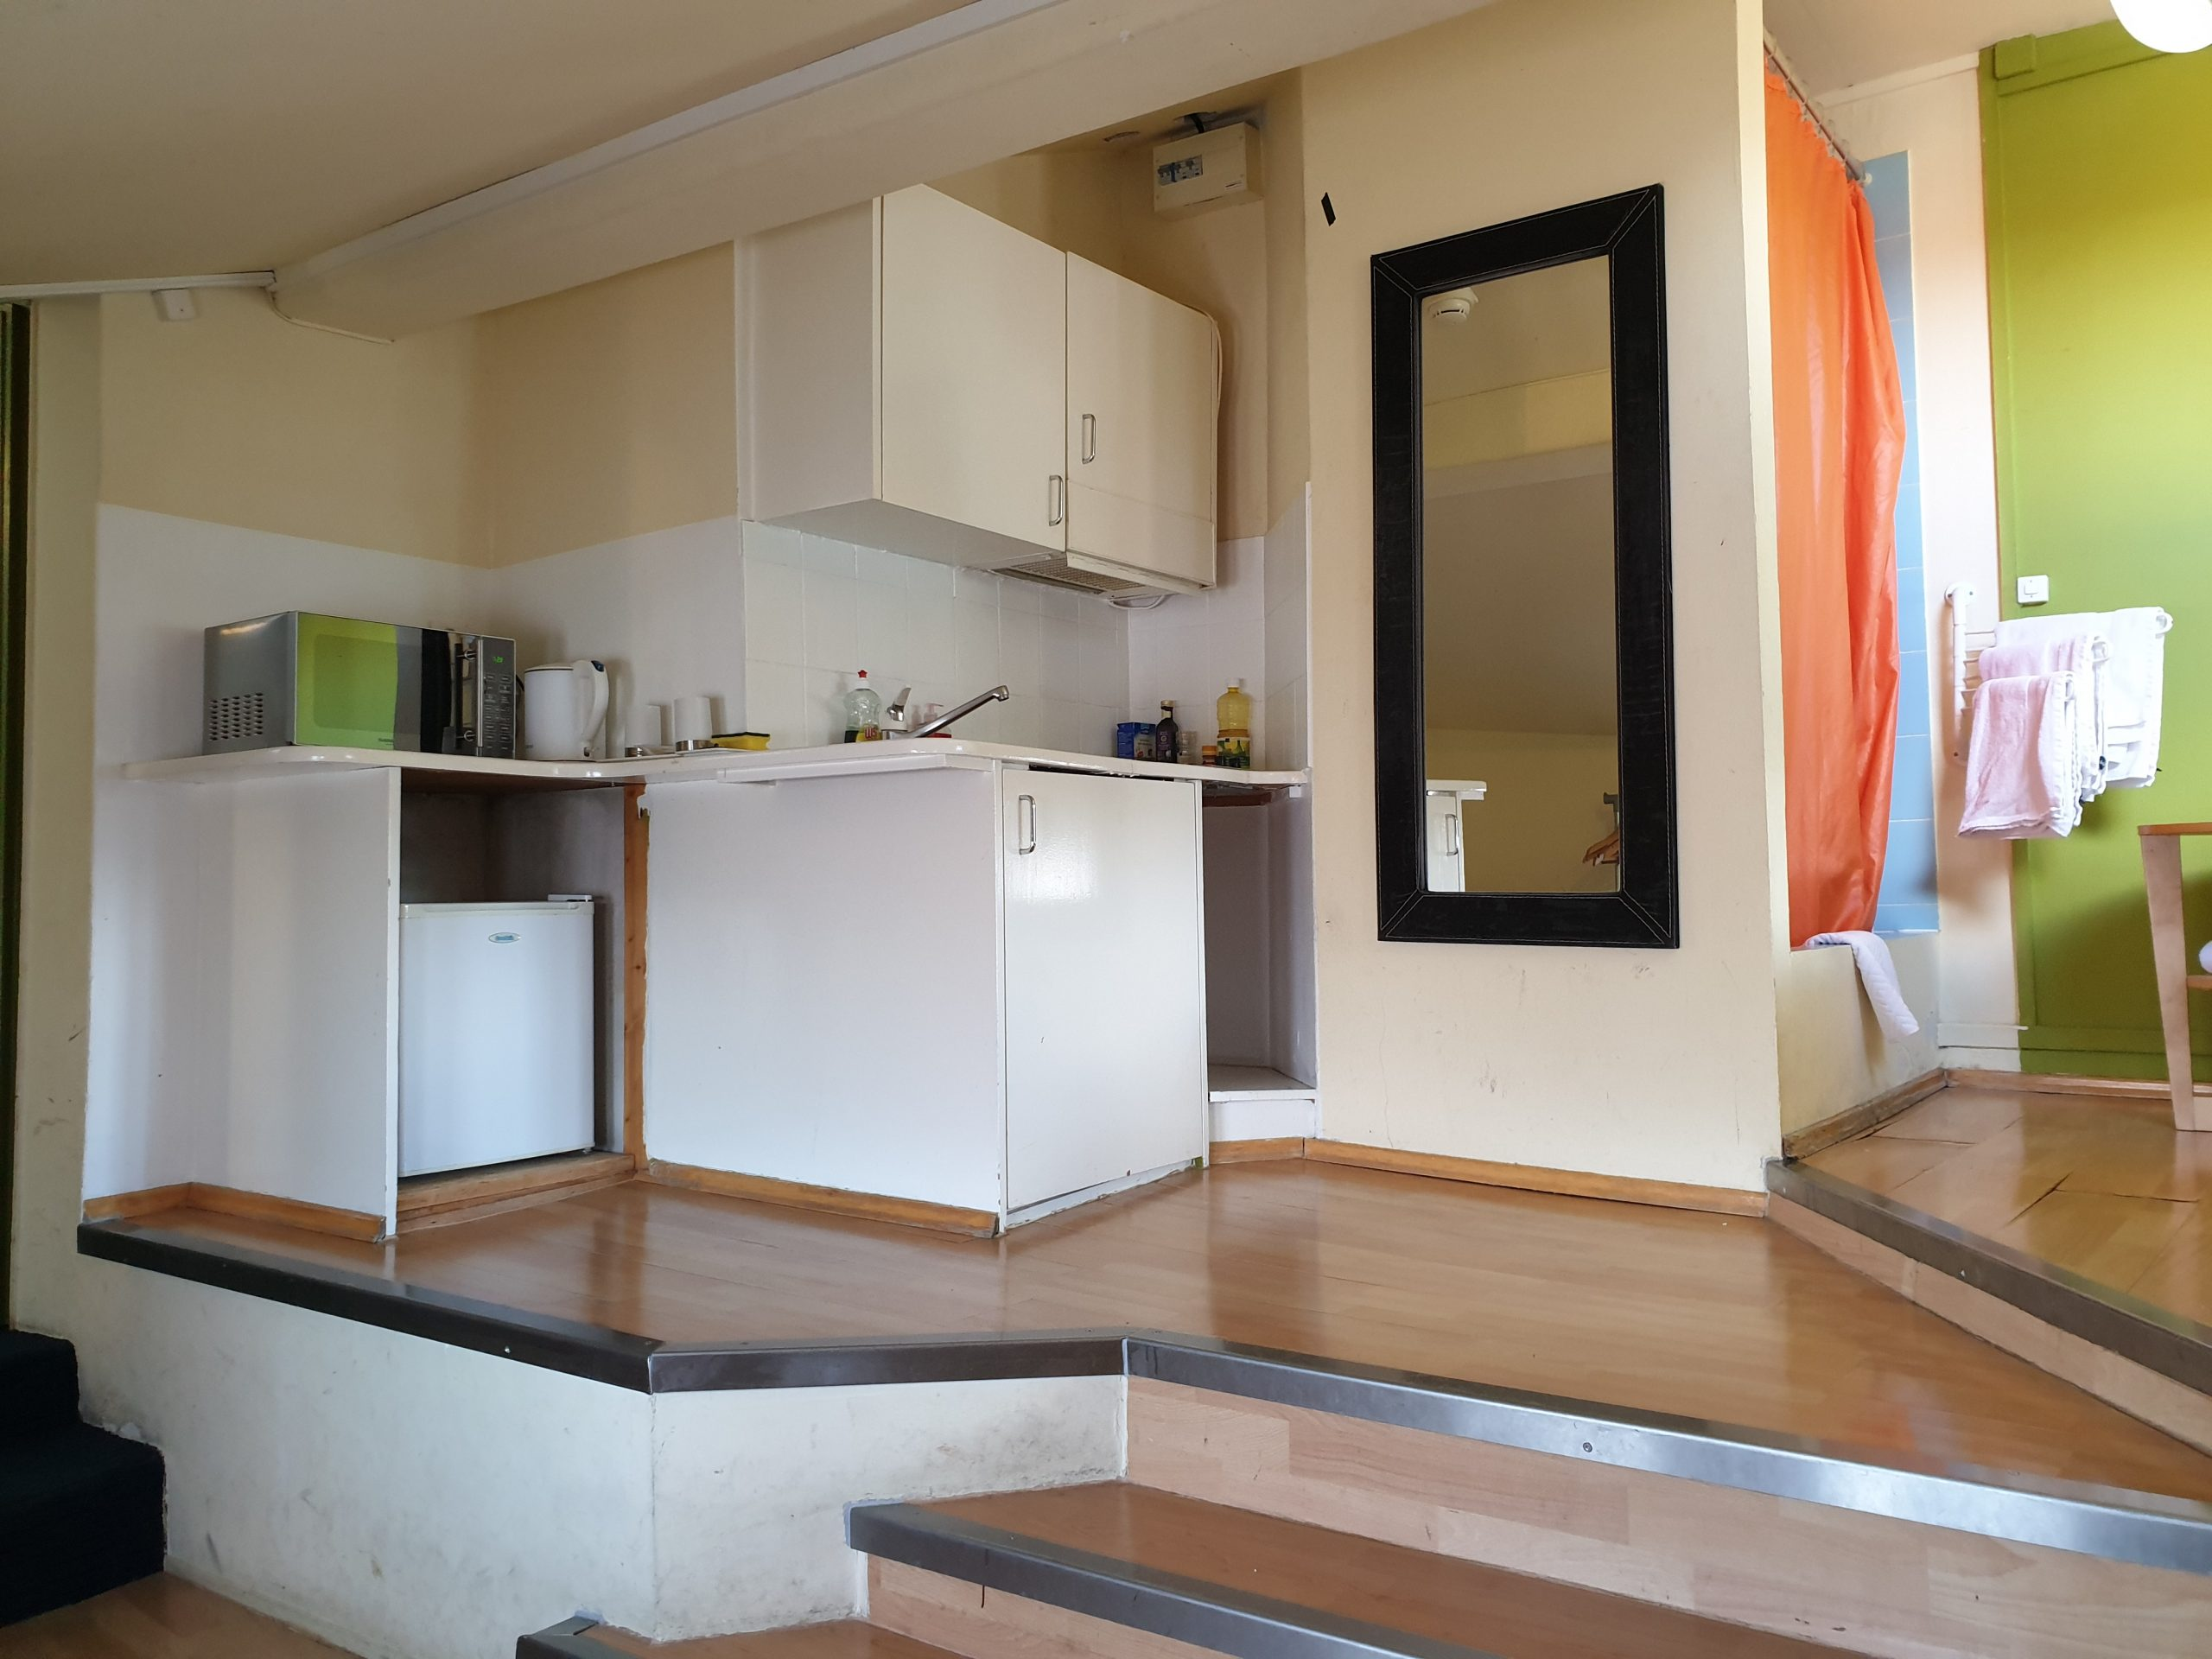 Apartment - kitchenette